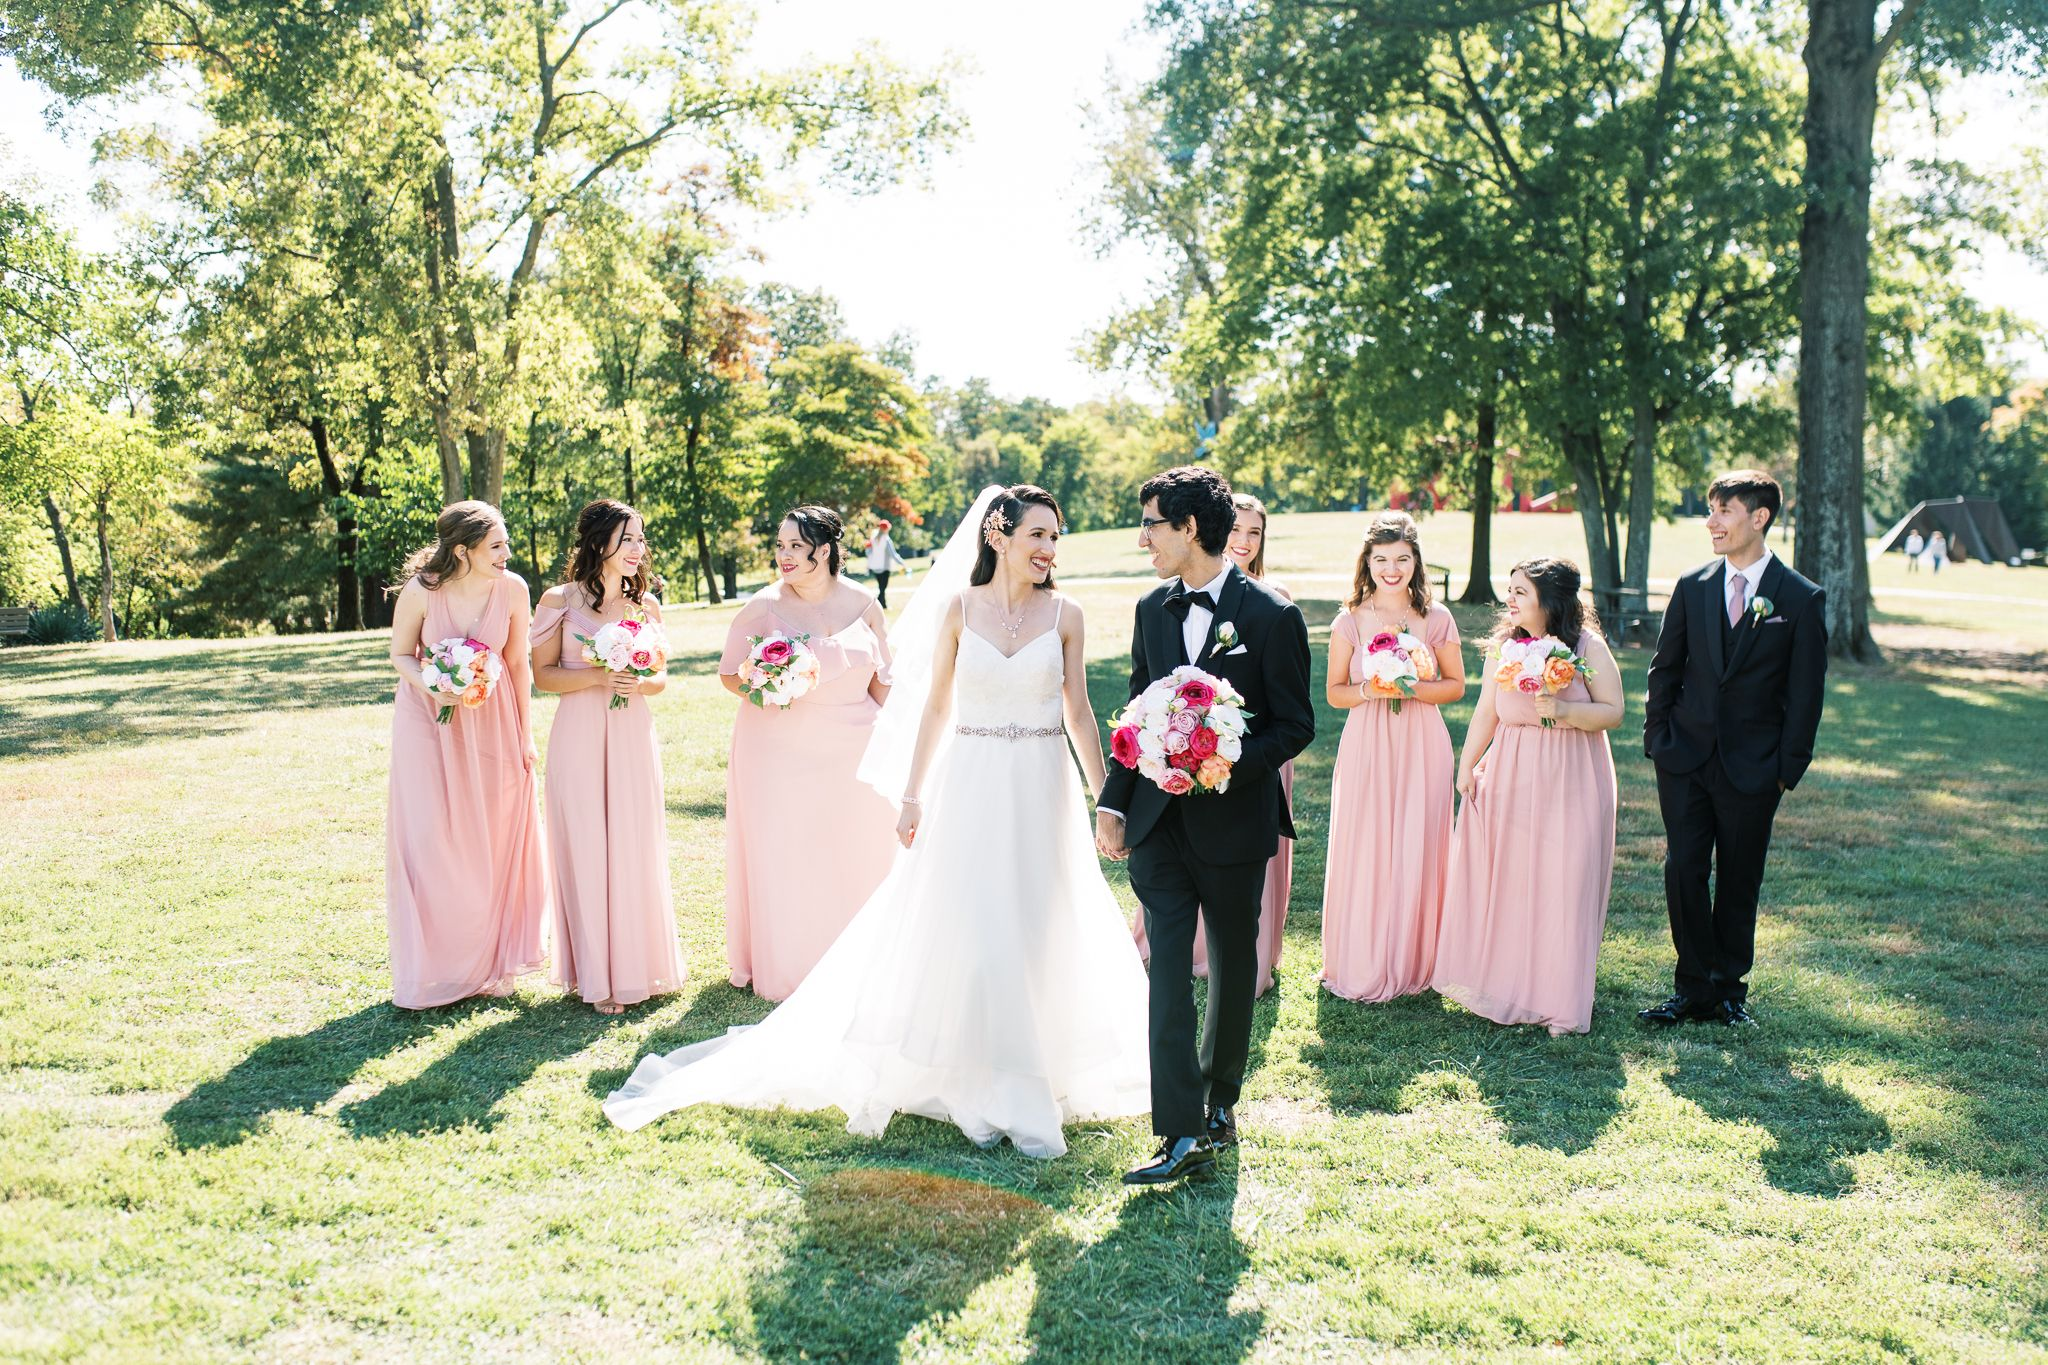 Laumeier Sculpture Park Photography of bridal party walking taken by St Louis Wedding Photographer JKG Photography